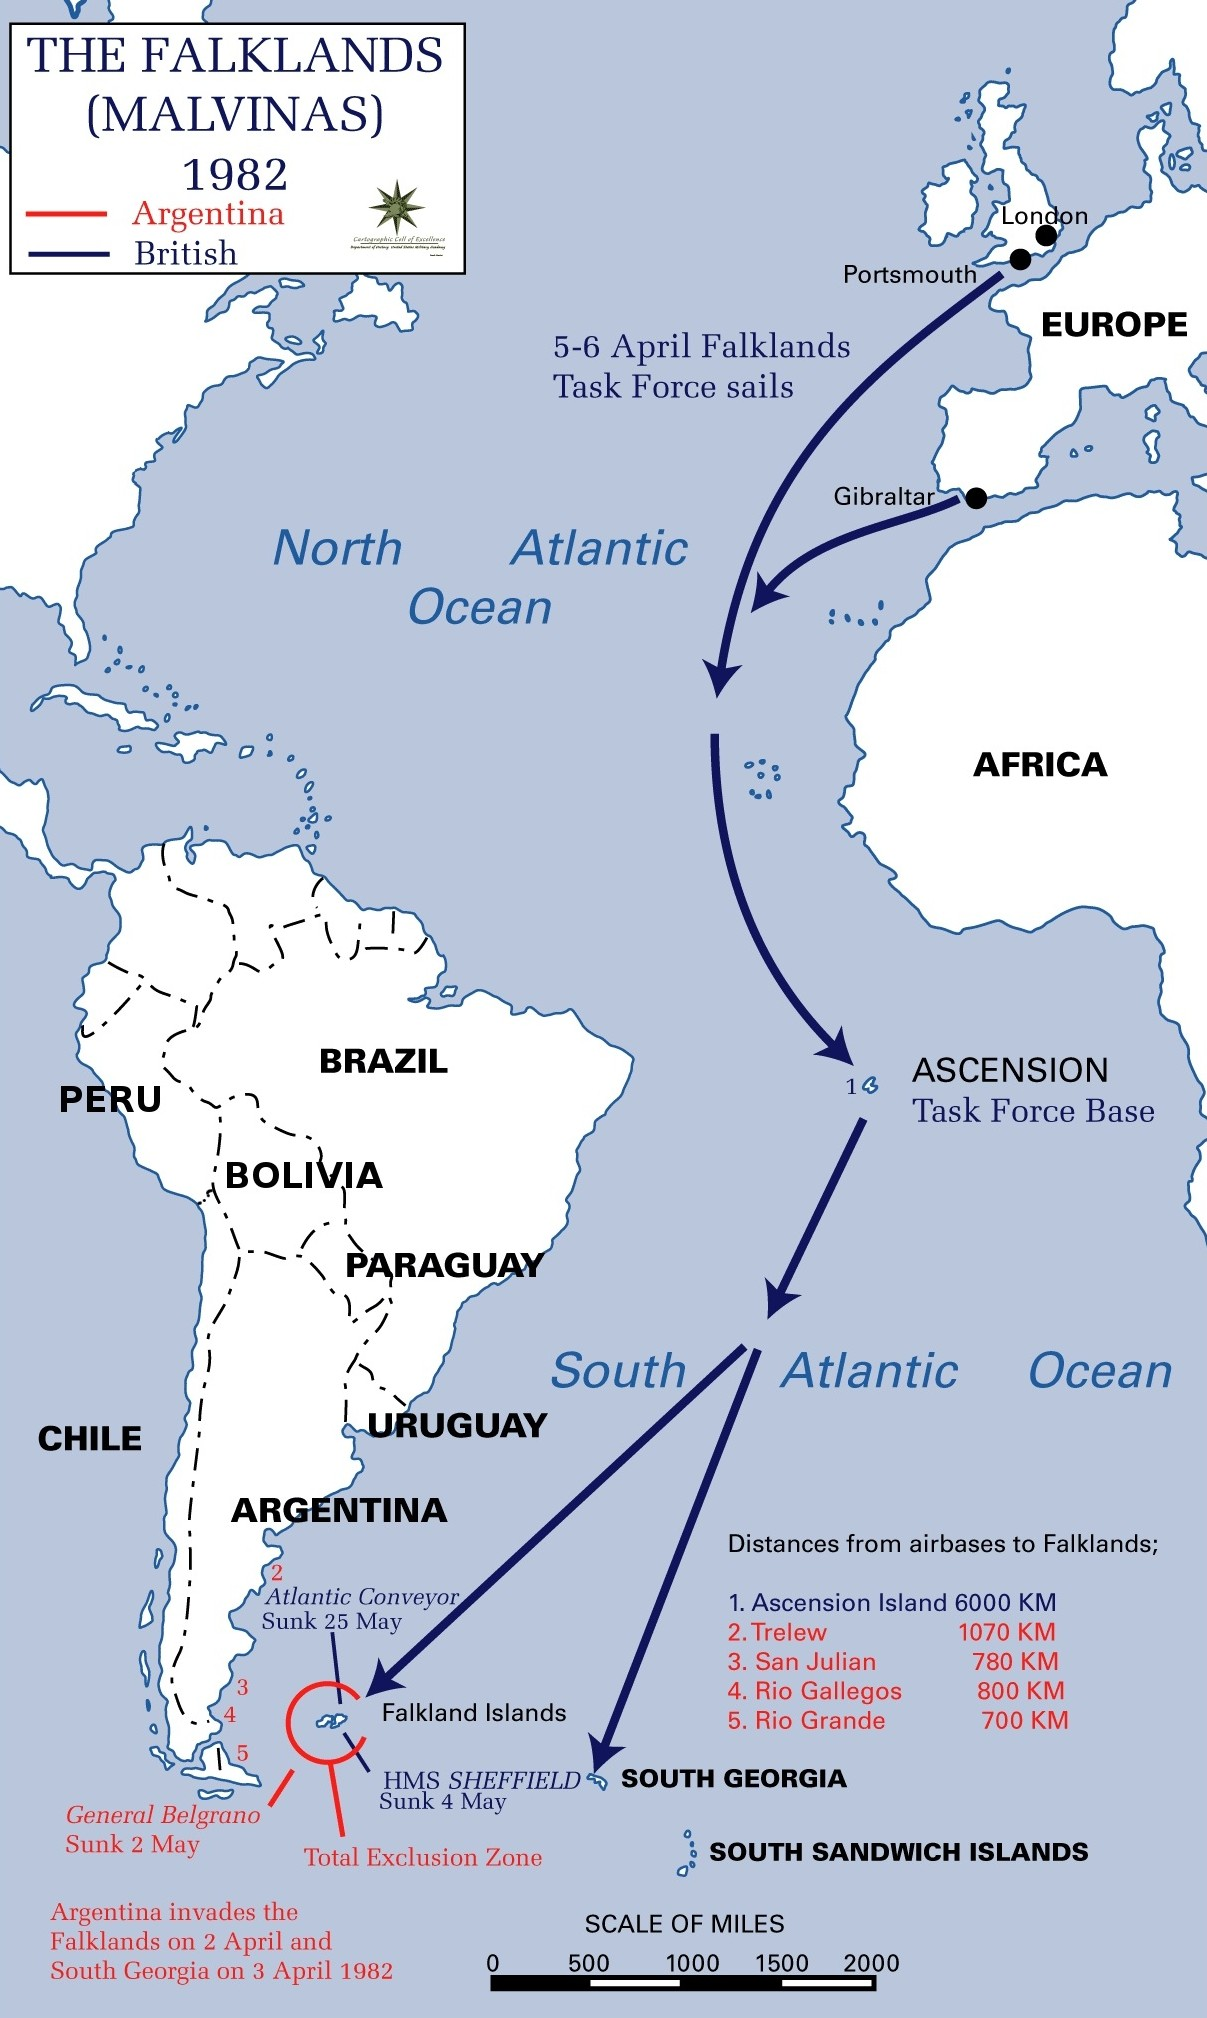 falklands_campaign_distances_to_bases_1982